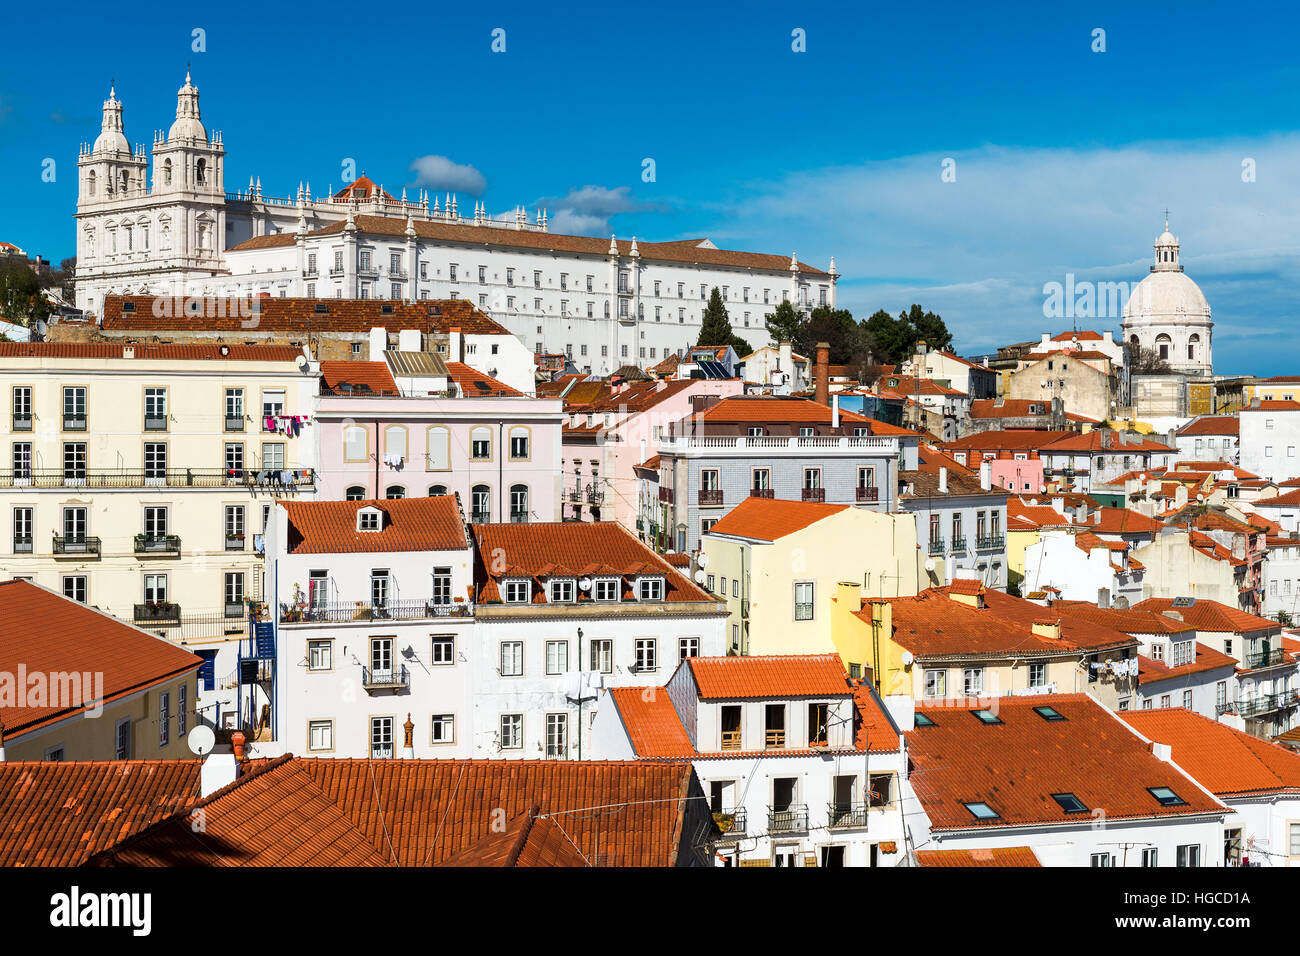 View of the Alfama Neighborhood in Lisbon, Portugal, with colorful buildings and the National Pantheon - Stock Image